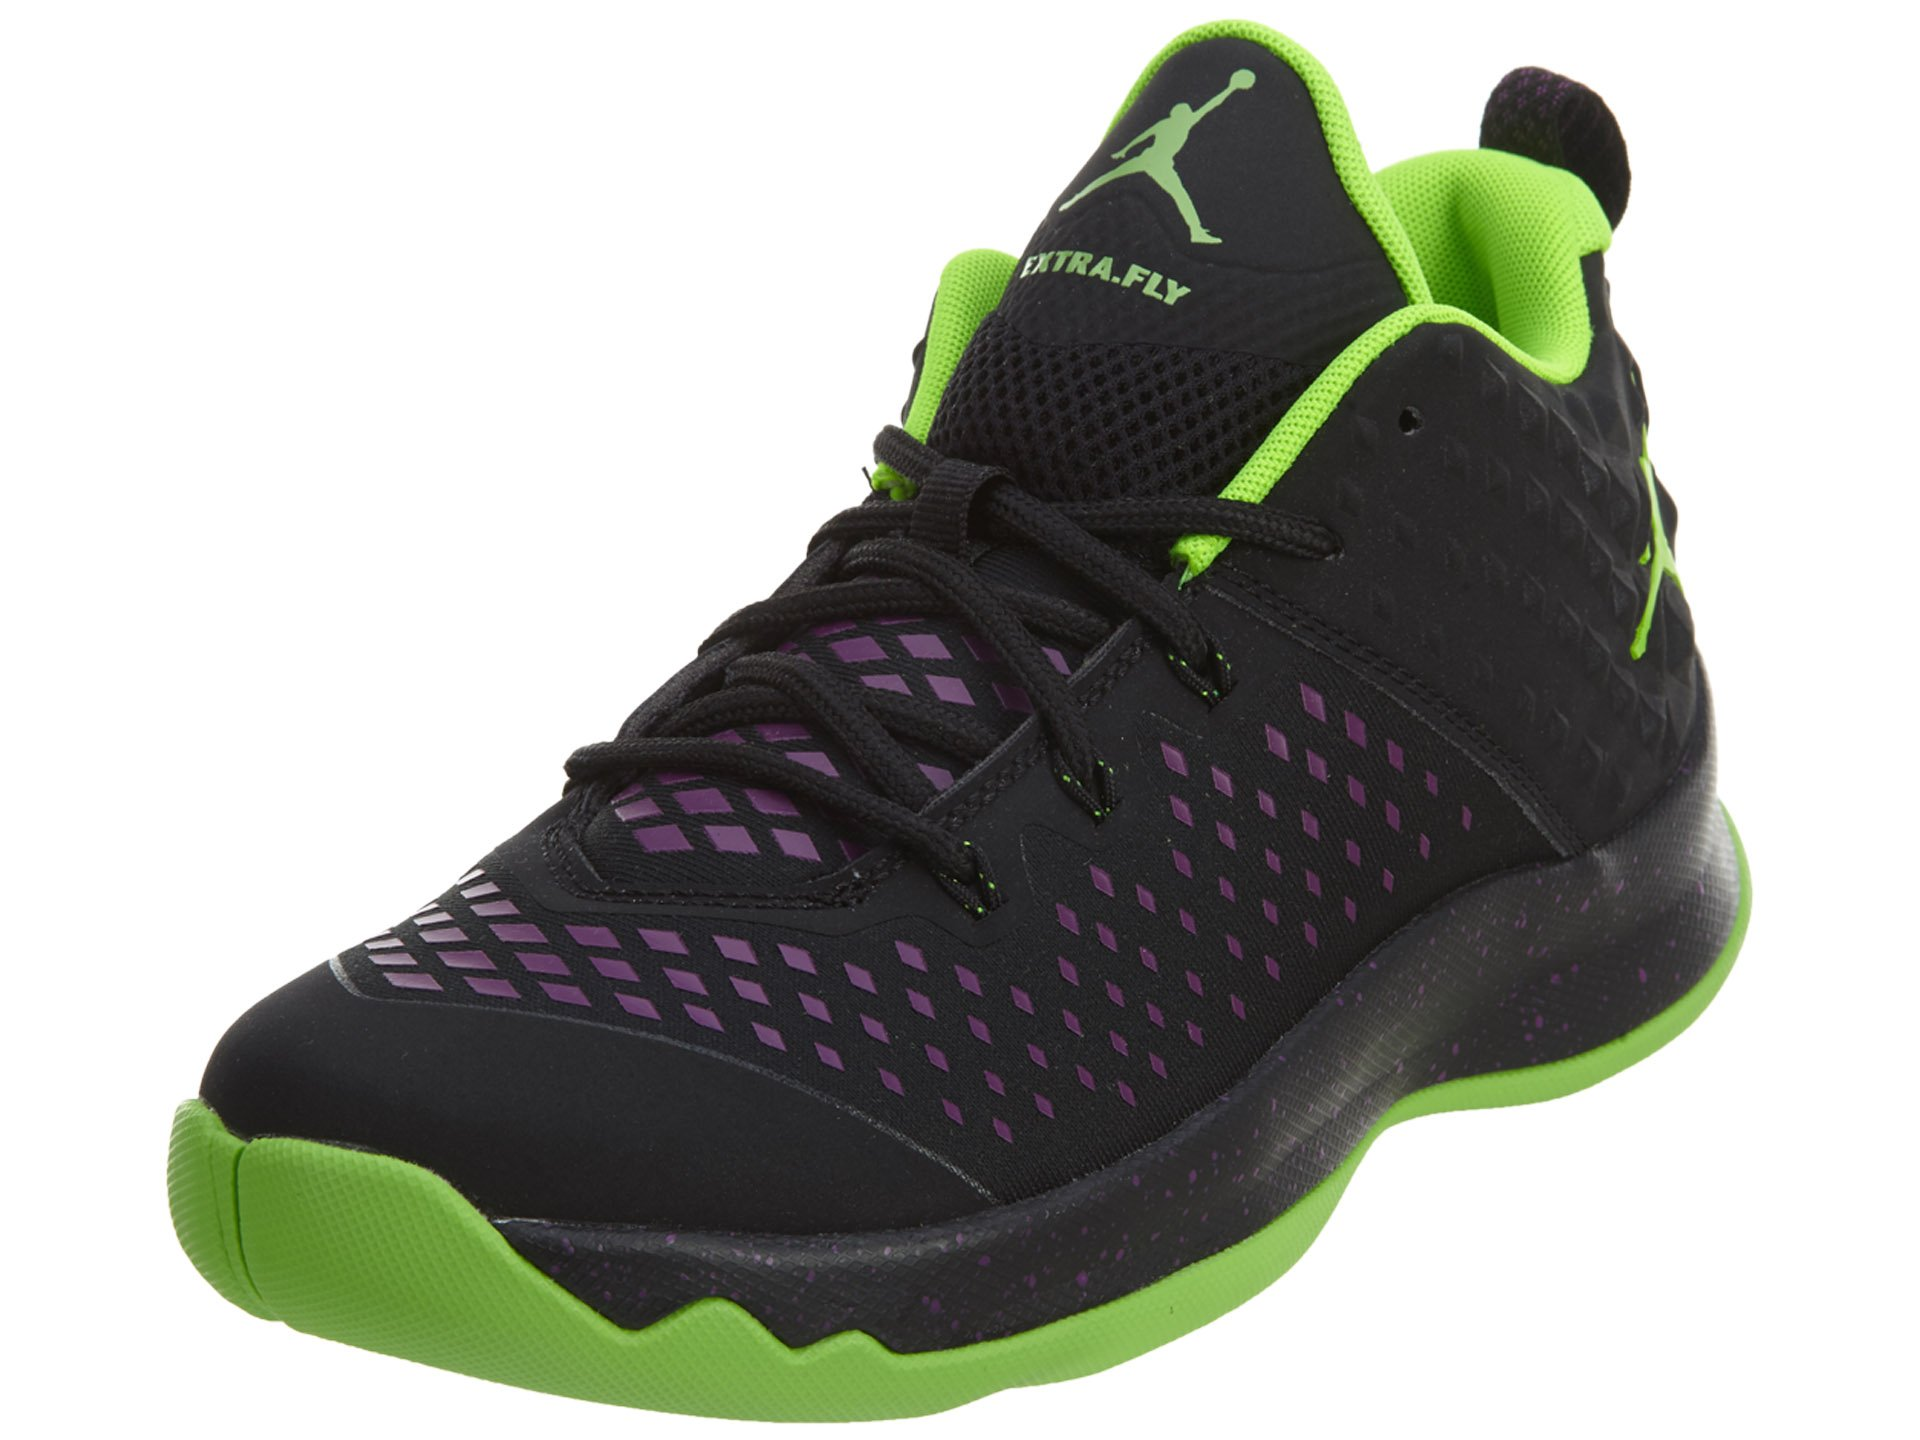 Jordan JORDAN EXTRA FLY BG BOYS basketball-shoes 854550-002_6.5Y - BLACK/ELECTRIC GREEN-BRIGHT GRAPE